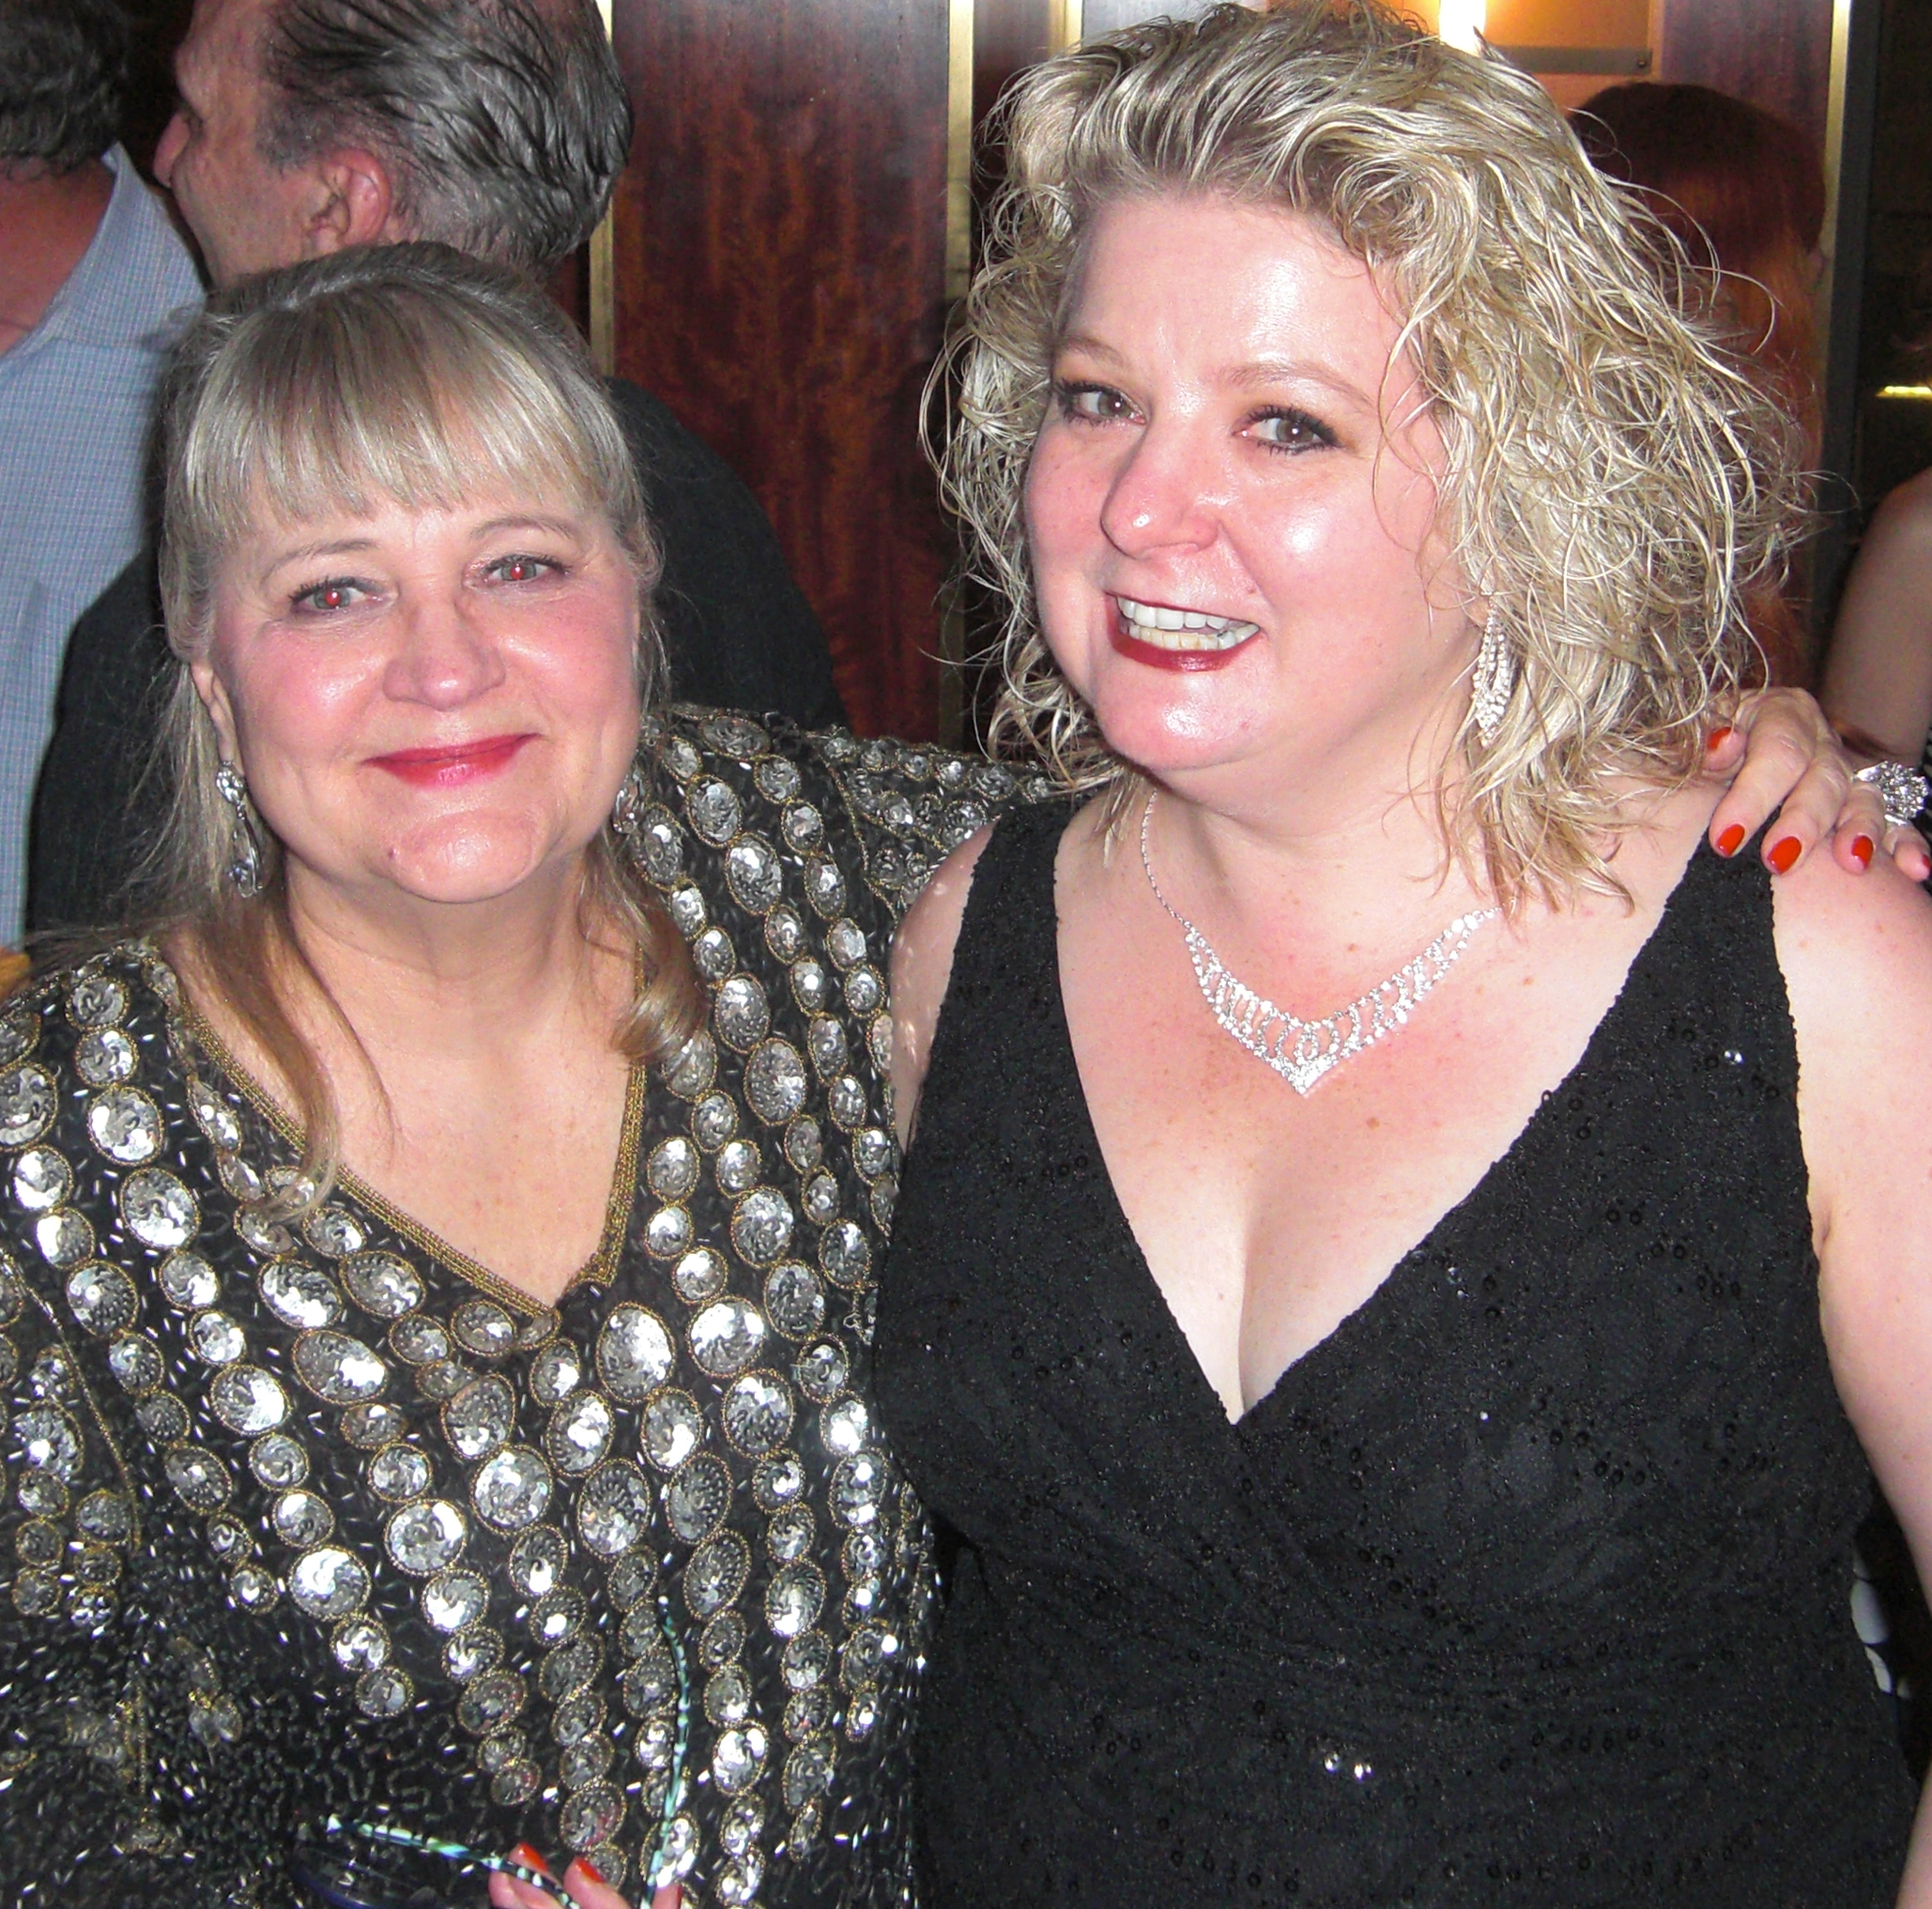 Tanya Moberly with Debbi at the meet and greet after the show